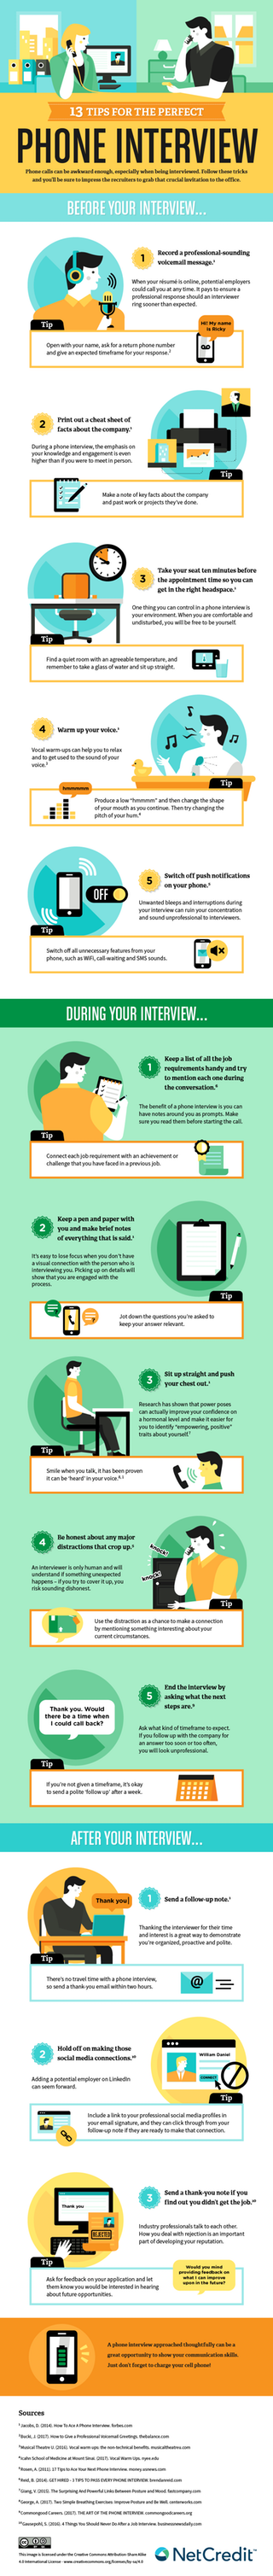 13 tips to master a phone interview coolguides